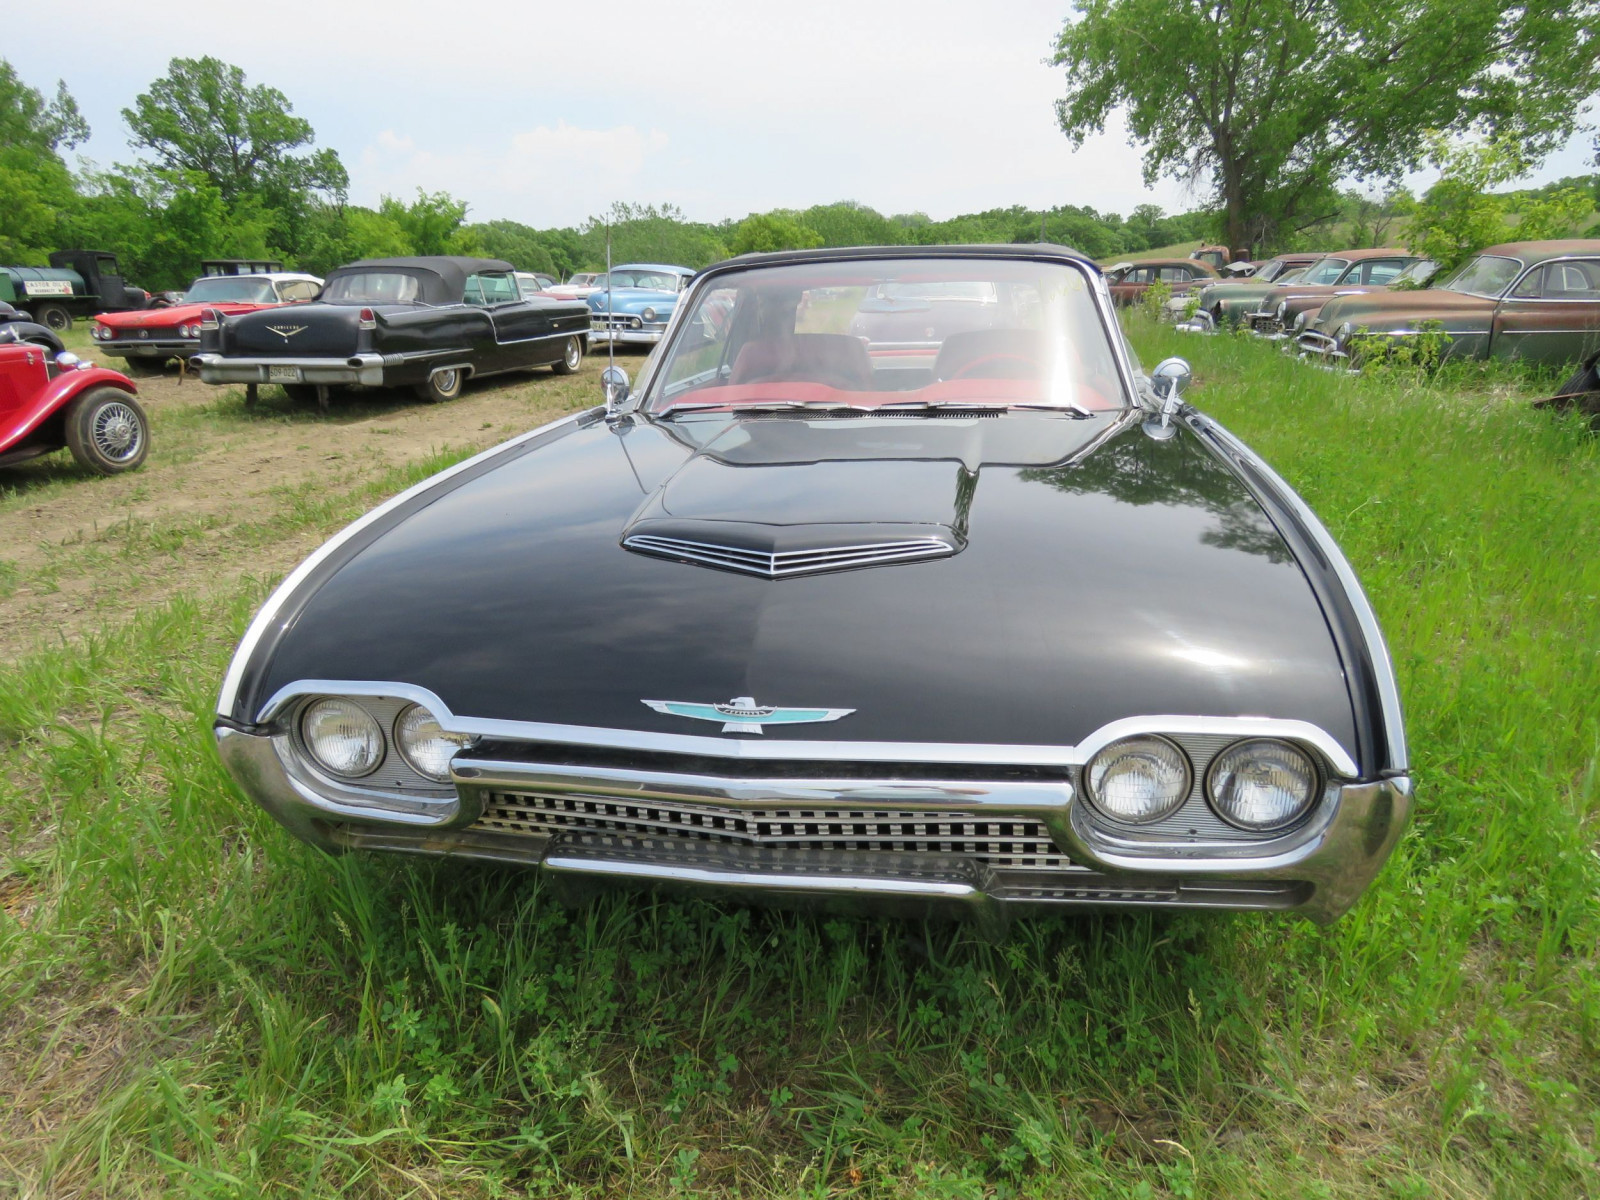 1962 Ford Thunderbird Convertible - Image 2